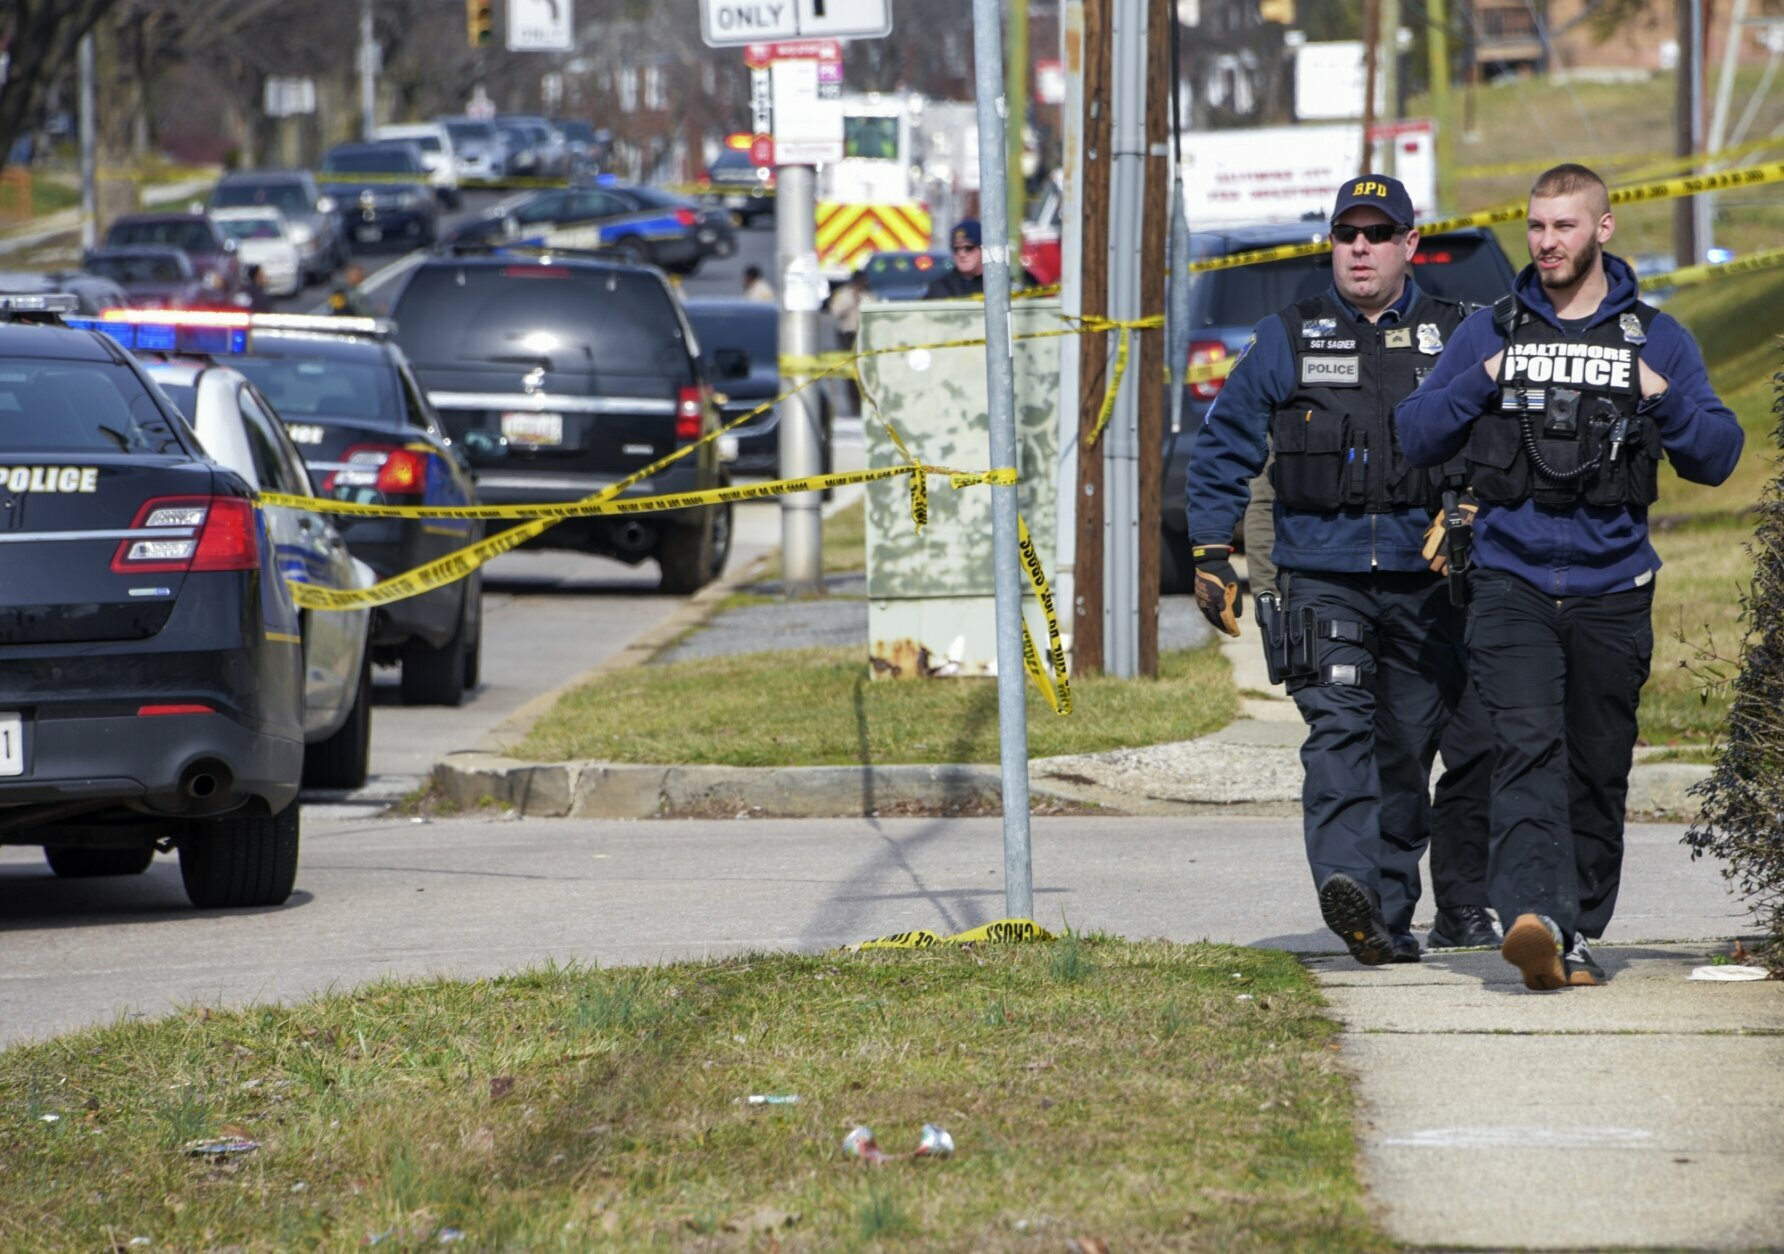 Baltimore County police are on the scene of a shooting in Northeast Baltimore Wednesday afternoon, Feb. 12, 2020. Two law enforcement officers with a fugitive task force were injured and a suspect died in a shooting Wednesday in Baltimore, the U.S. Marshals Service said. (Ulysses Munoz/The Baltimore Sun via AP)